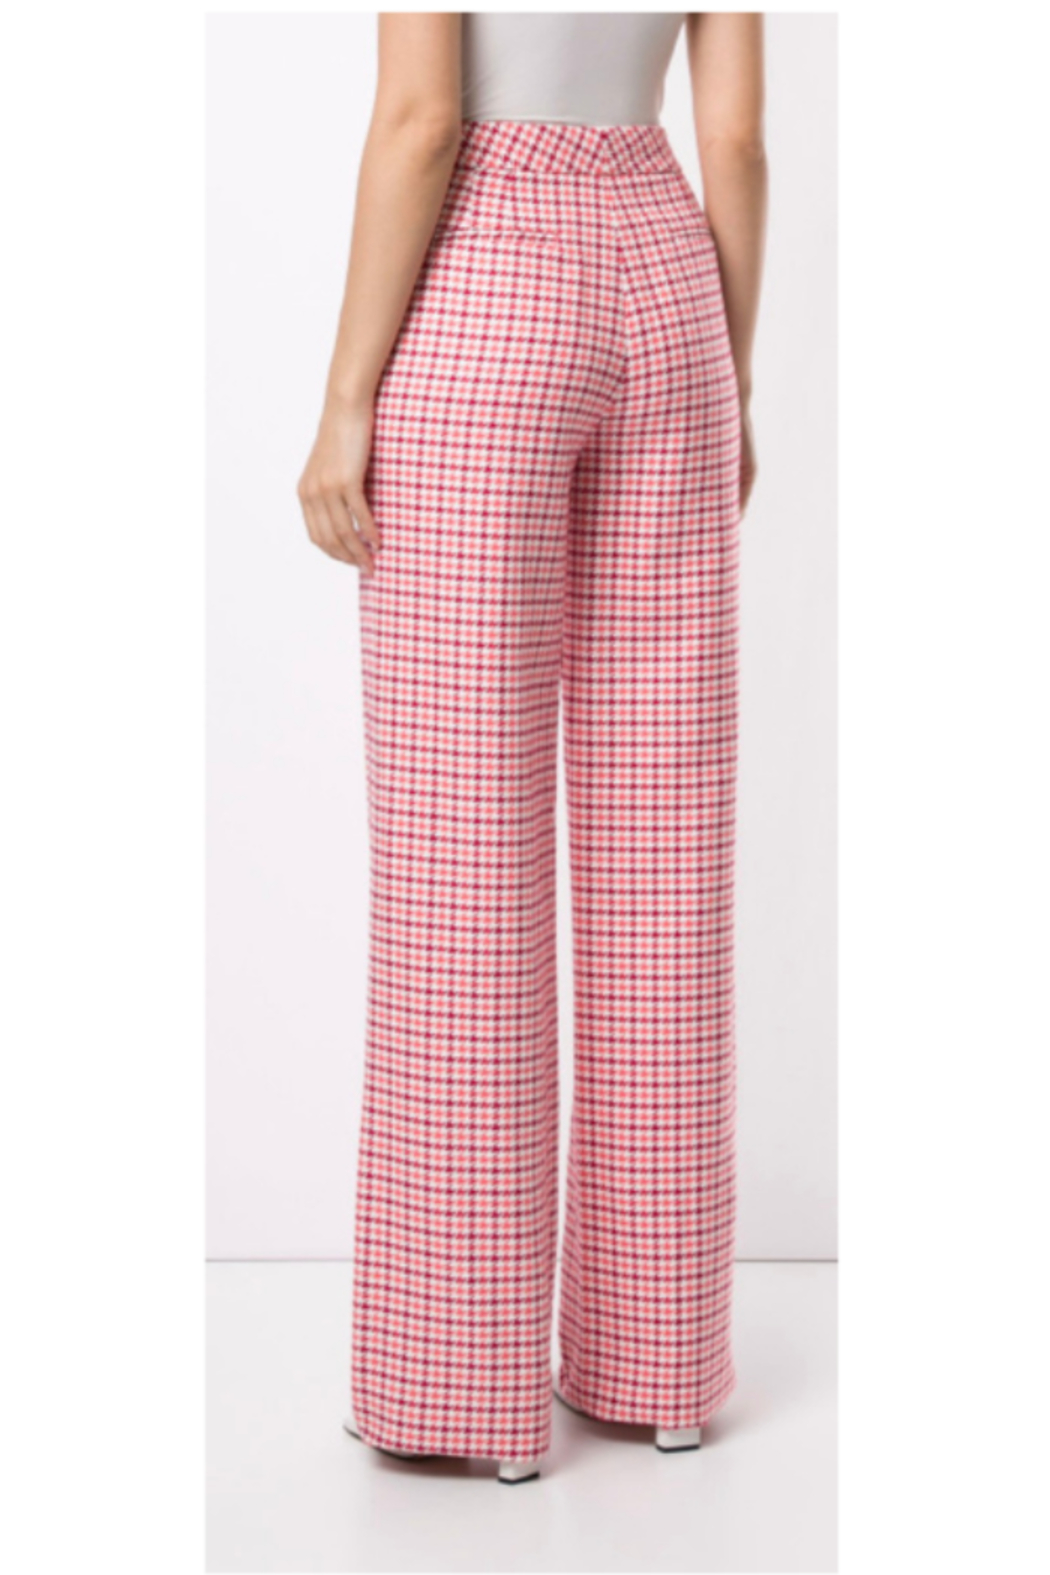 Adam Lippes WIDE LEG TROUSER - Front Full Image